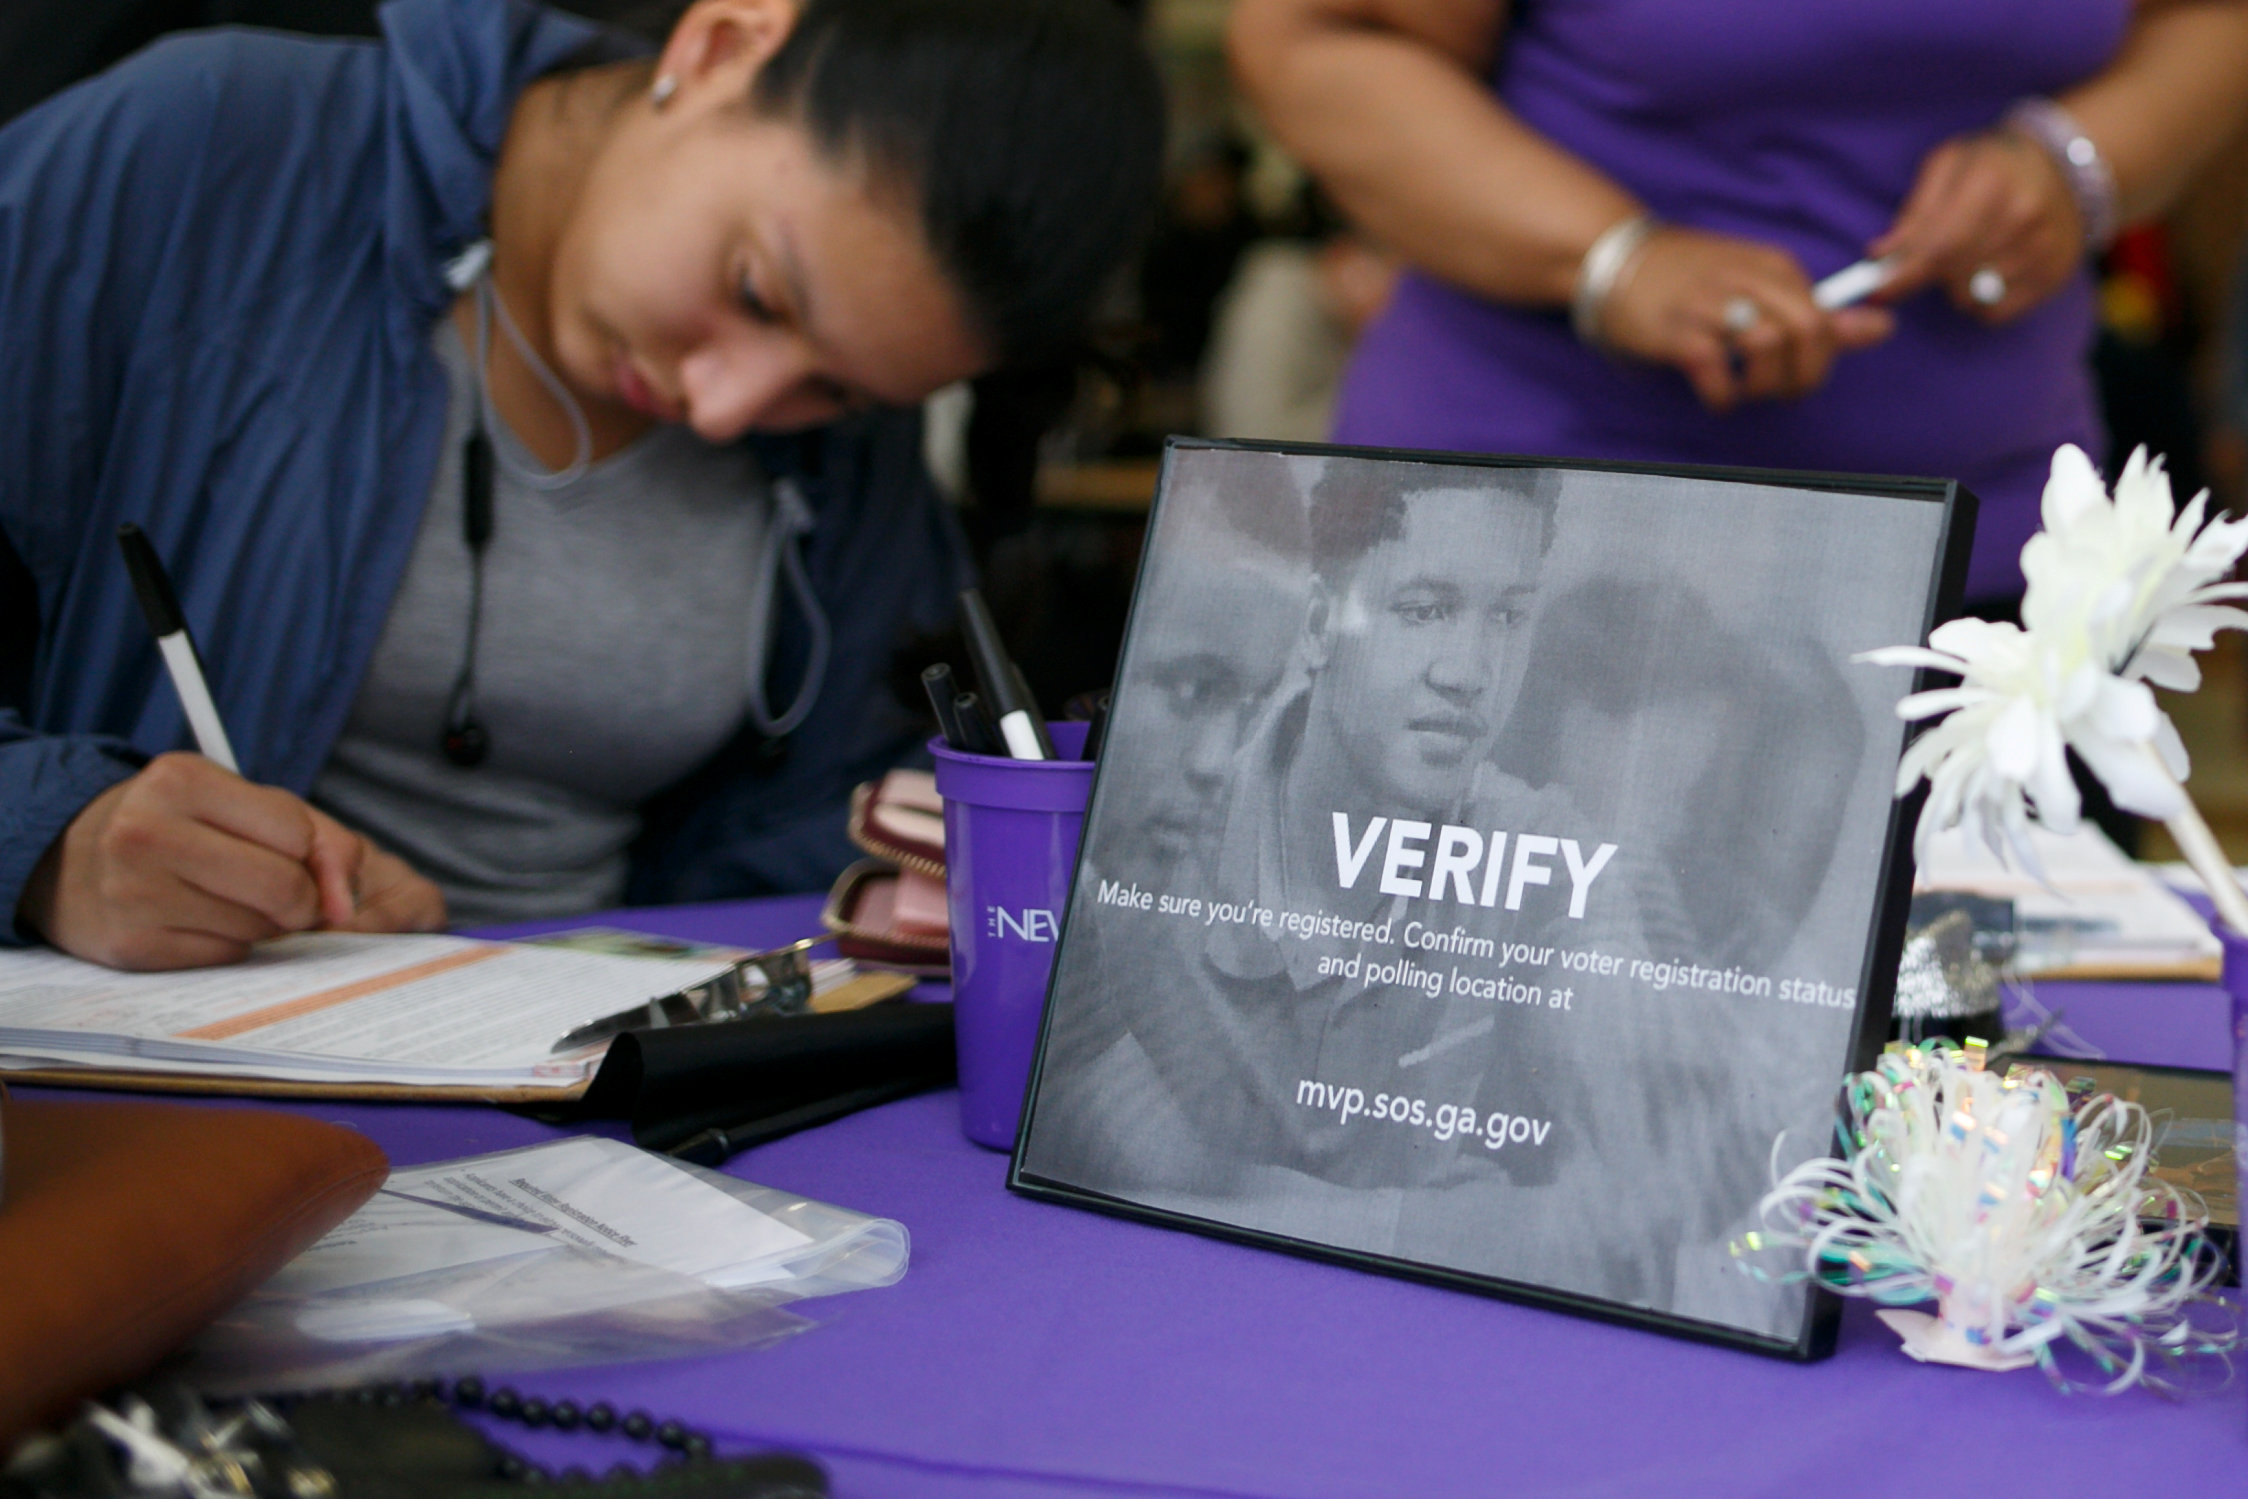 FILE PHOTO: South Cobb High School senior Fabiola Diaz, 18, carefully double-checks the details on her driver's license as she registers to vote during a registration drive by voting rights group New Project Georgia in Austell, Georgia, U.S. February 6, 2018. Picture taken February 6, 2018. REUTERS/Chris Aluka Berry